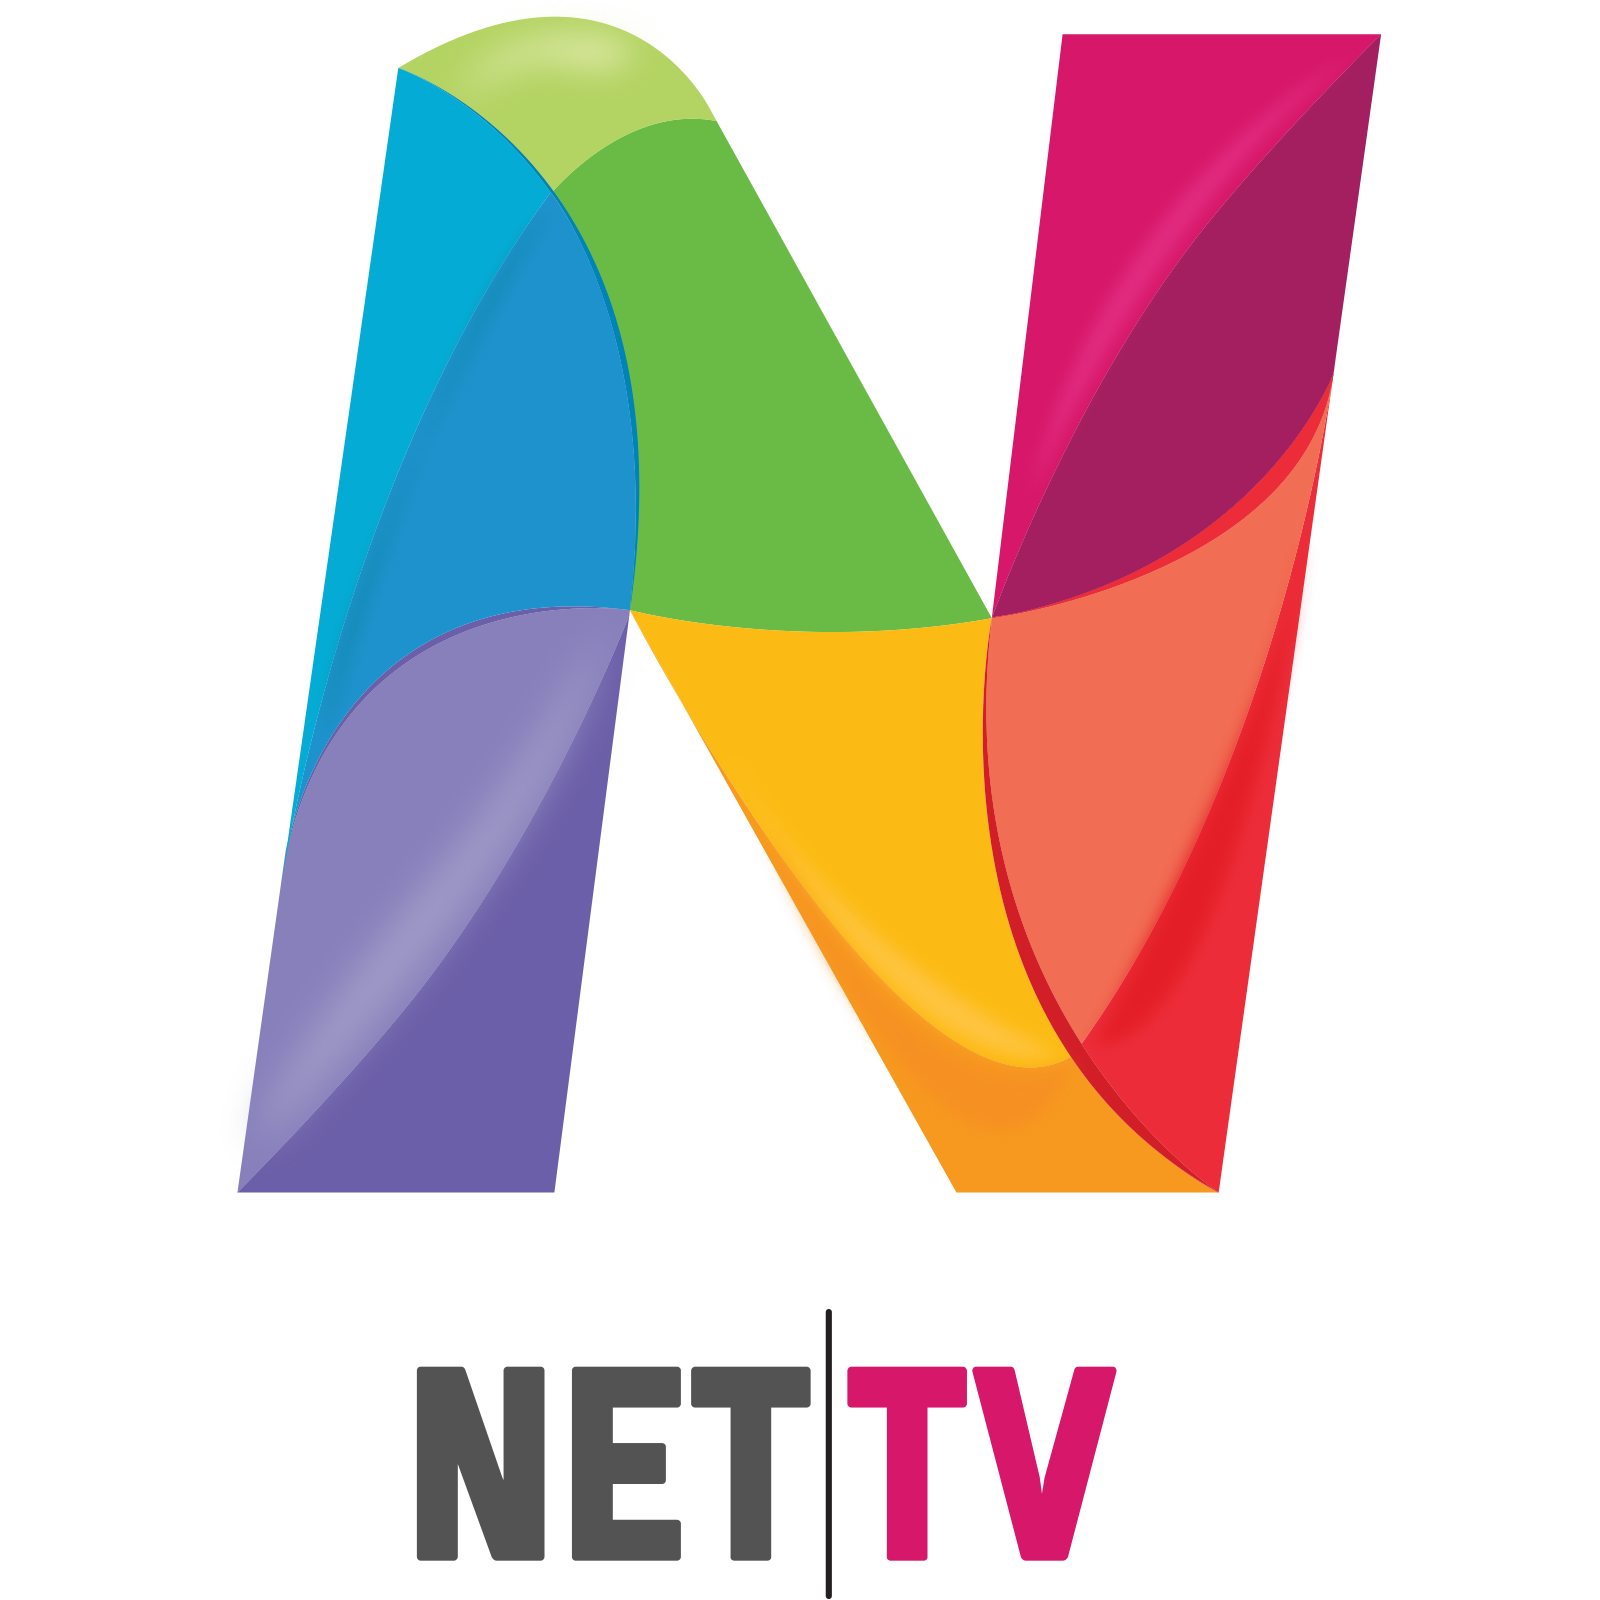 file net tv logo png wikipedia file net tv logo png wikipedia